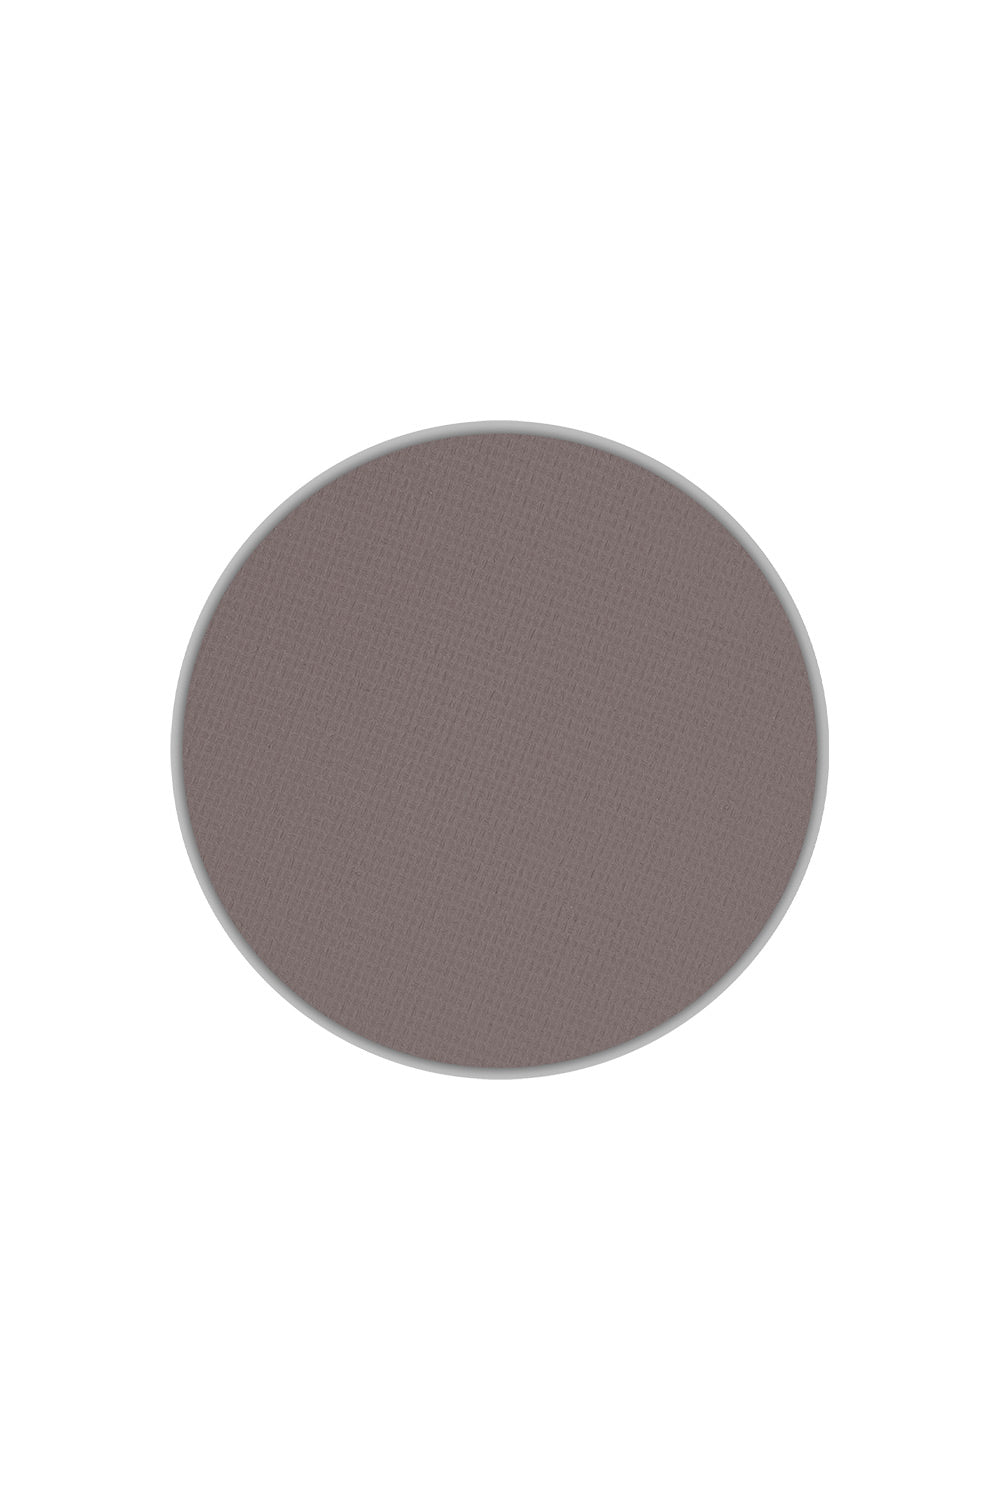 Gunsmoke - Type 2 Eyeshadow Pan